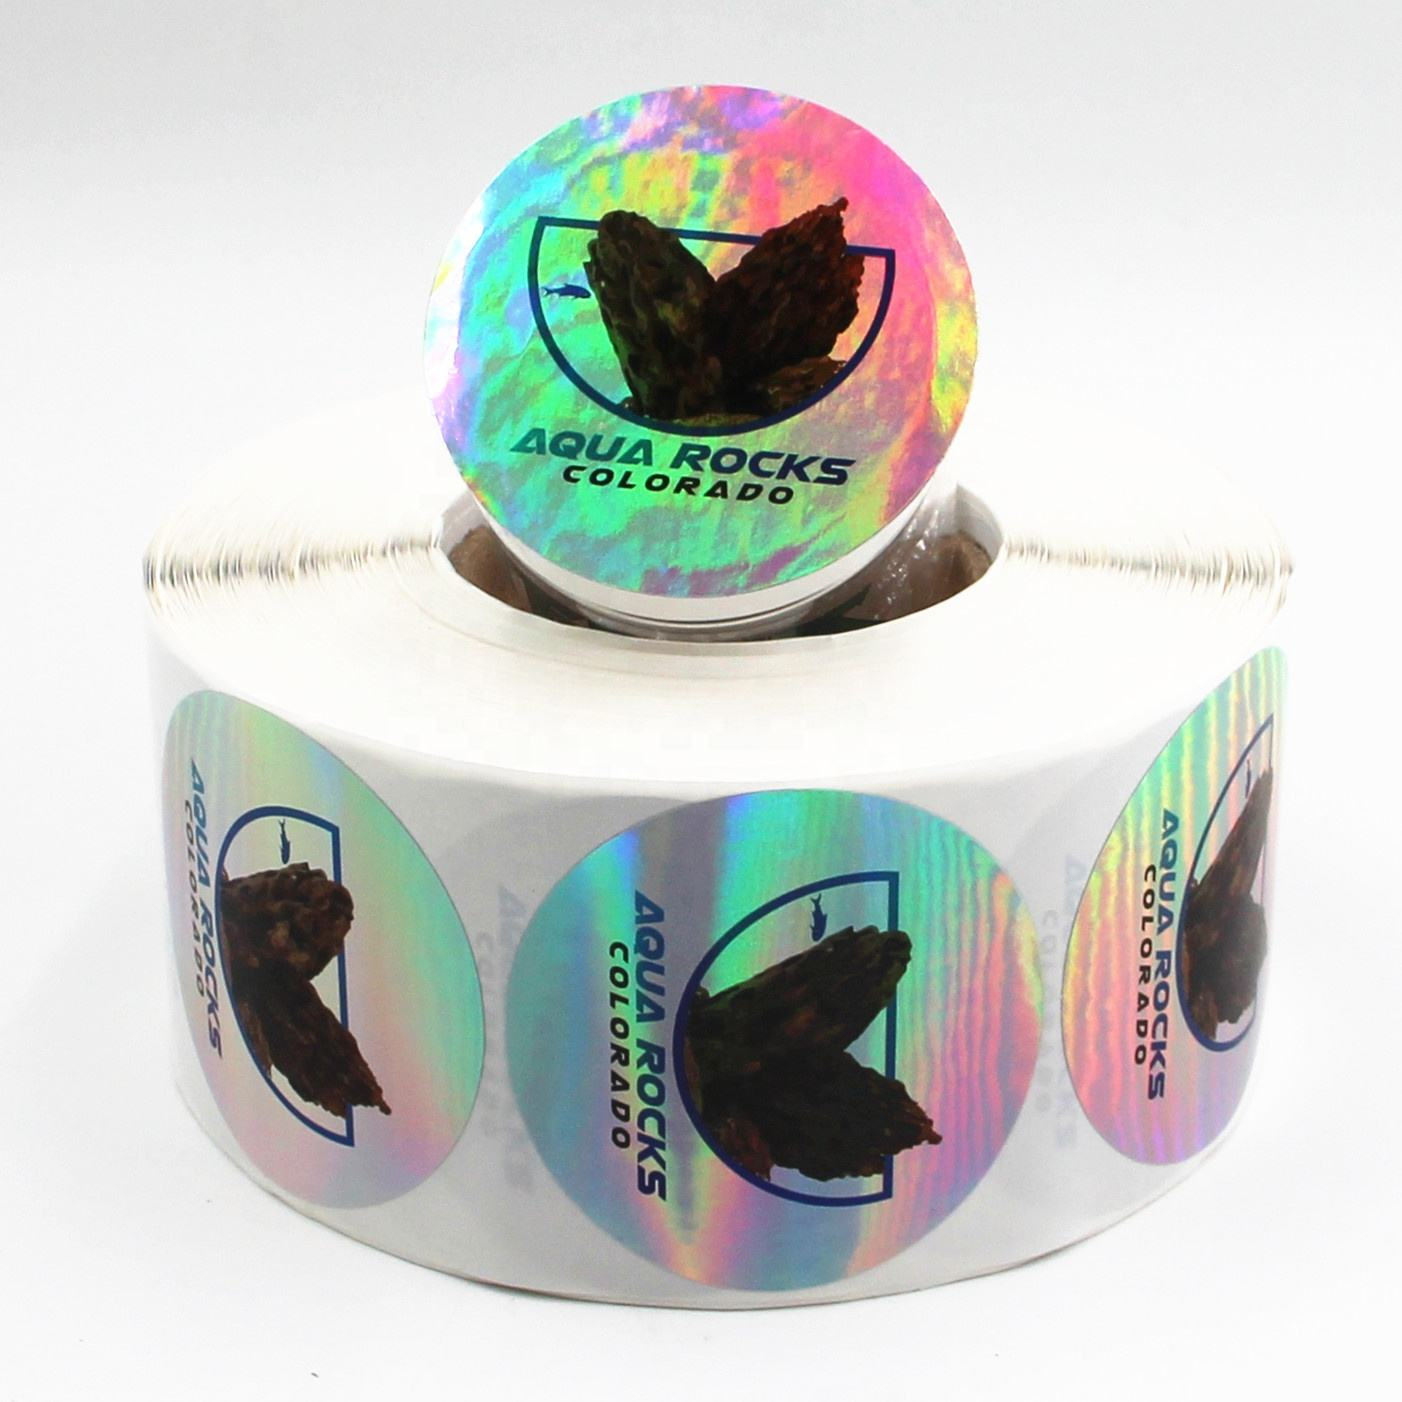 Rainbow Laser Film Label Stiker Tahan Air Label Bulat Stiker Sealing Label untuk Kemasan Botol